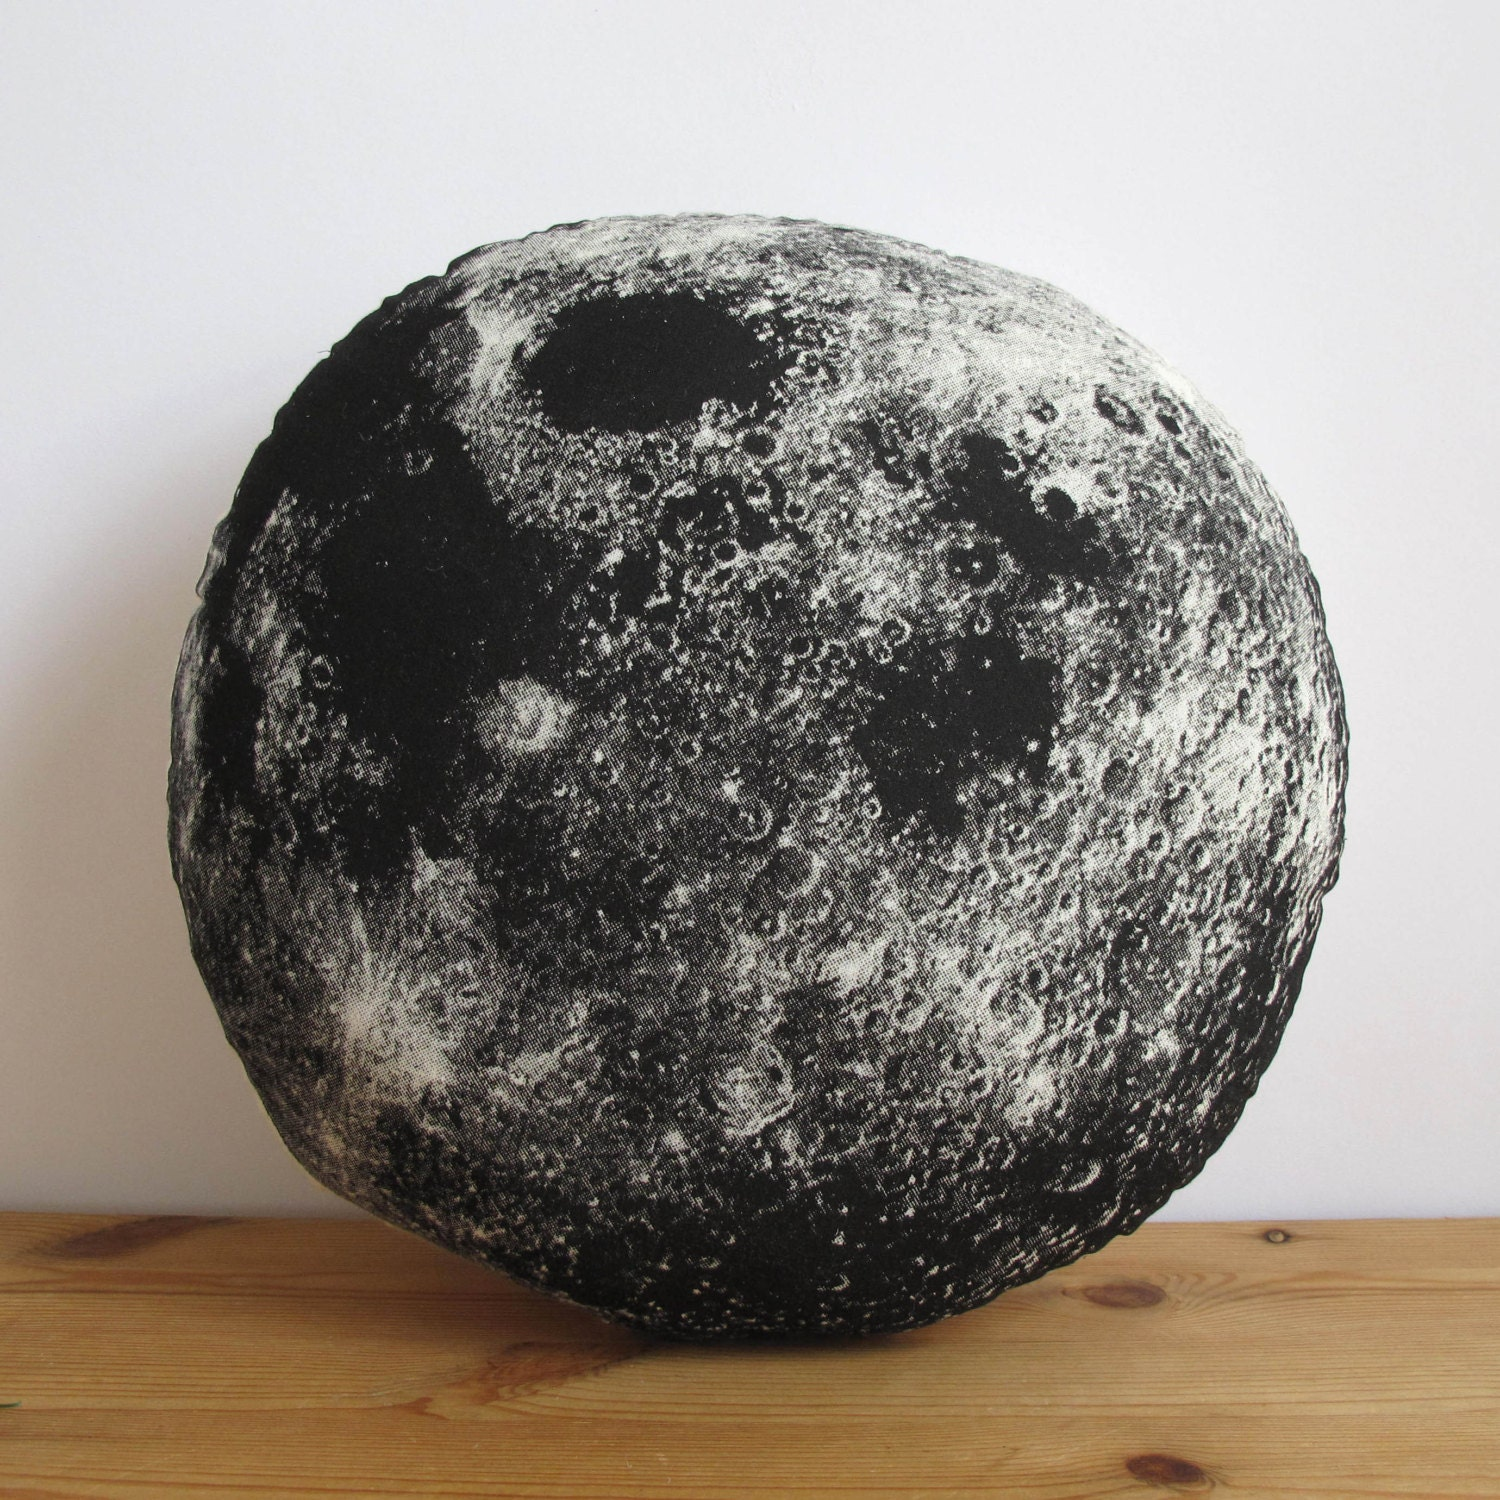 Mooning Over New Missoni: Silkscreen Moon Pillow